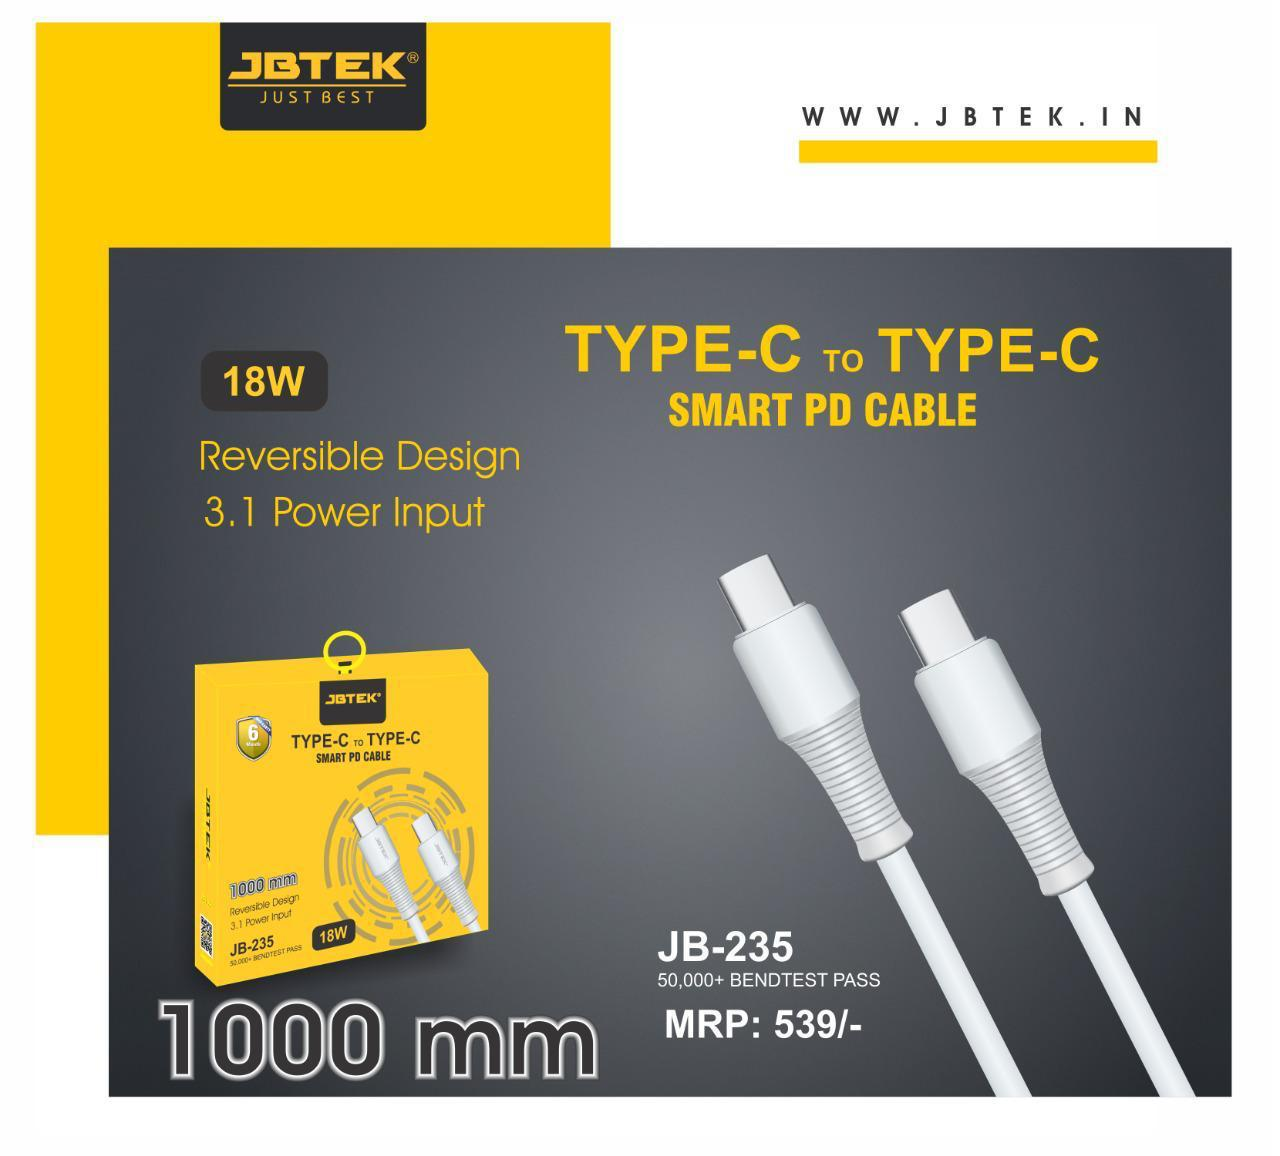 Jbtek Type-C To Type-C Cable 3.1 Amp Fast charging (18W)